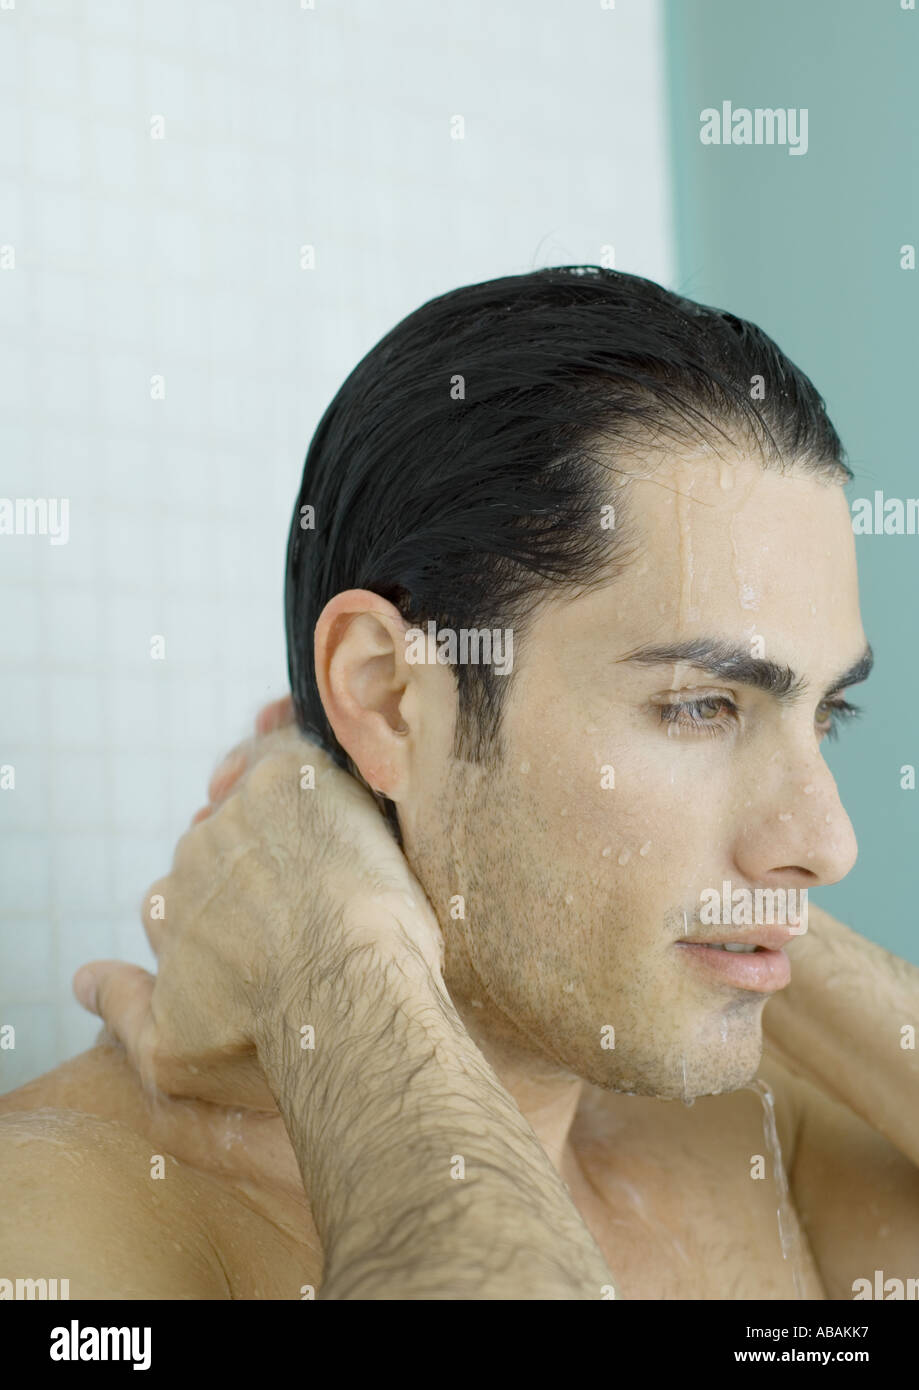 Man with hands behind neck in shower - Stock Image